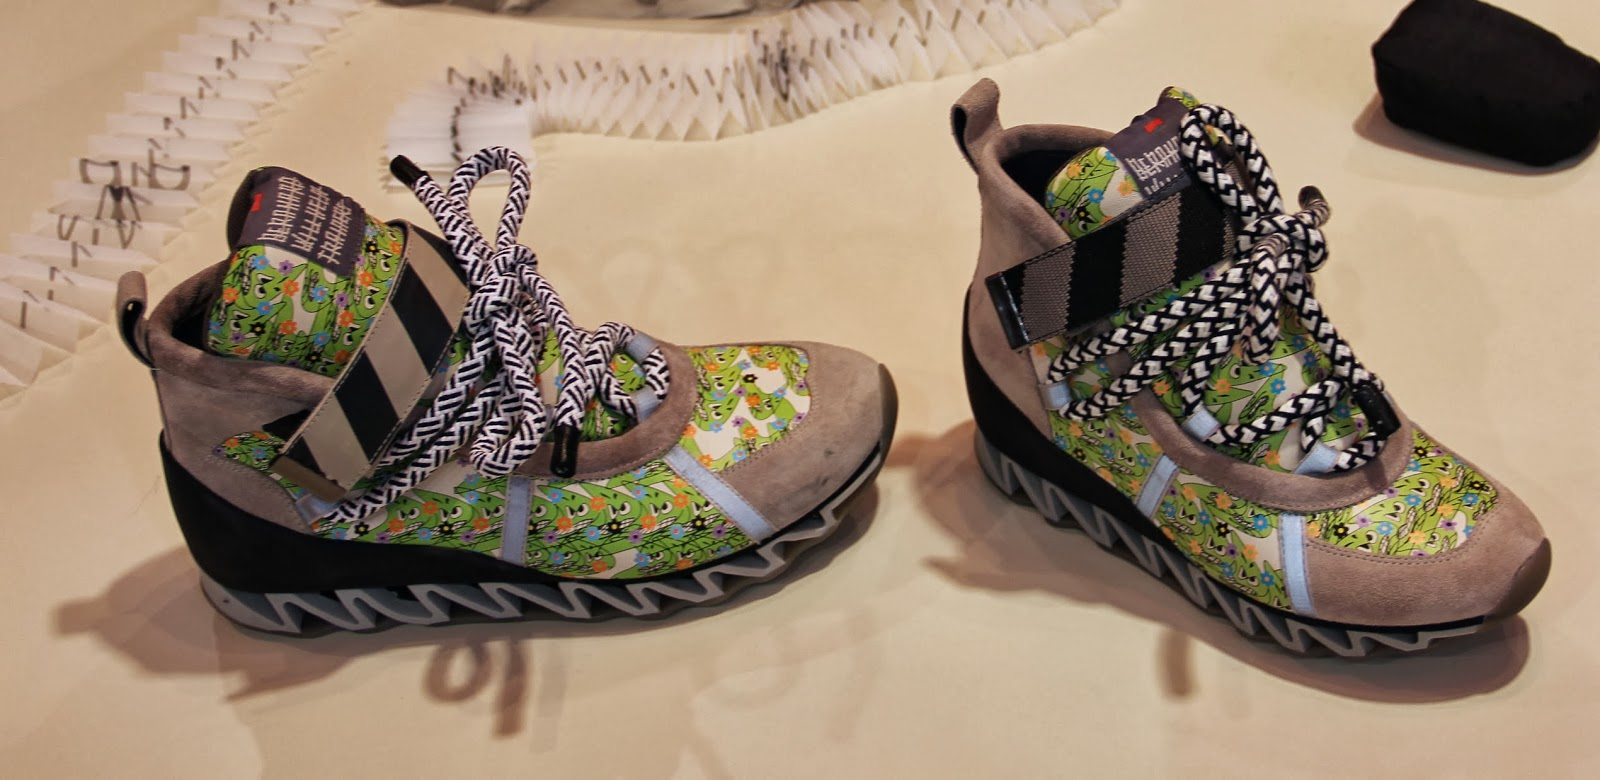 168de1d42548 For S S 2014 the series of unisex sneakers come in a variety of color and  print options...and a color block sandal with adjustable straps.